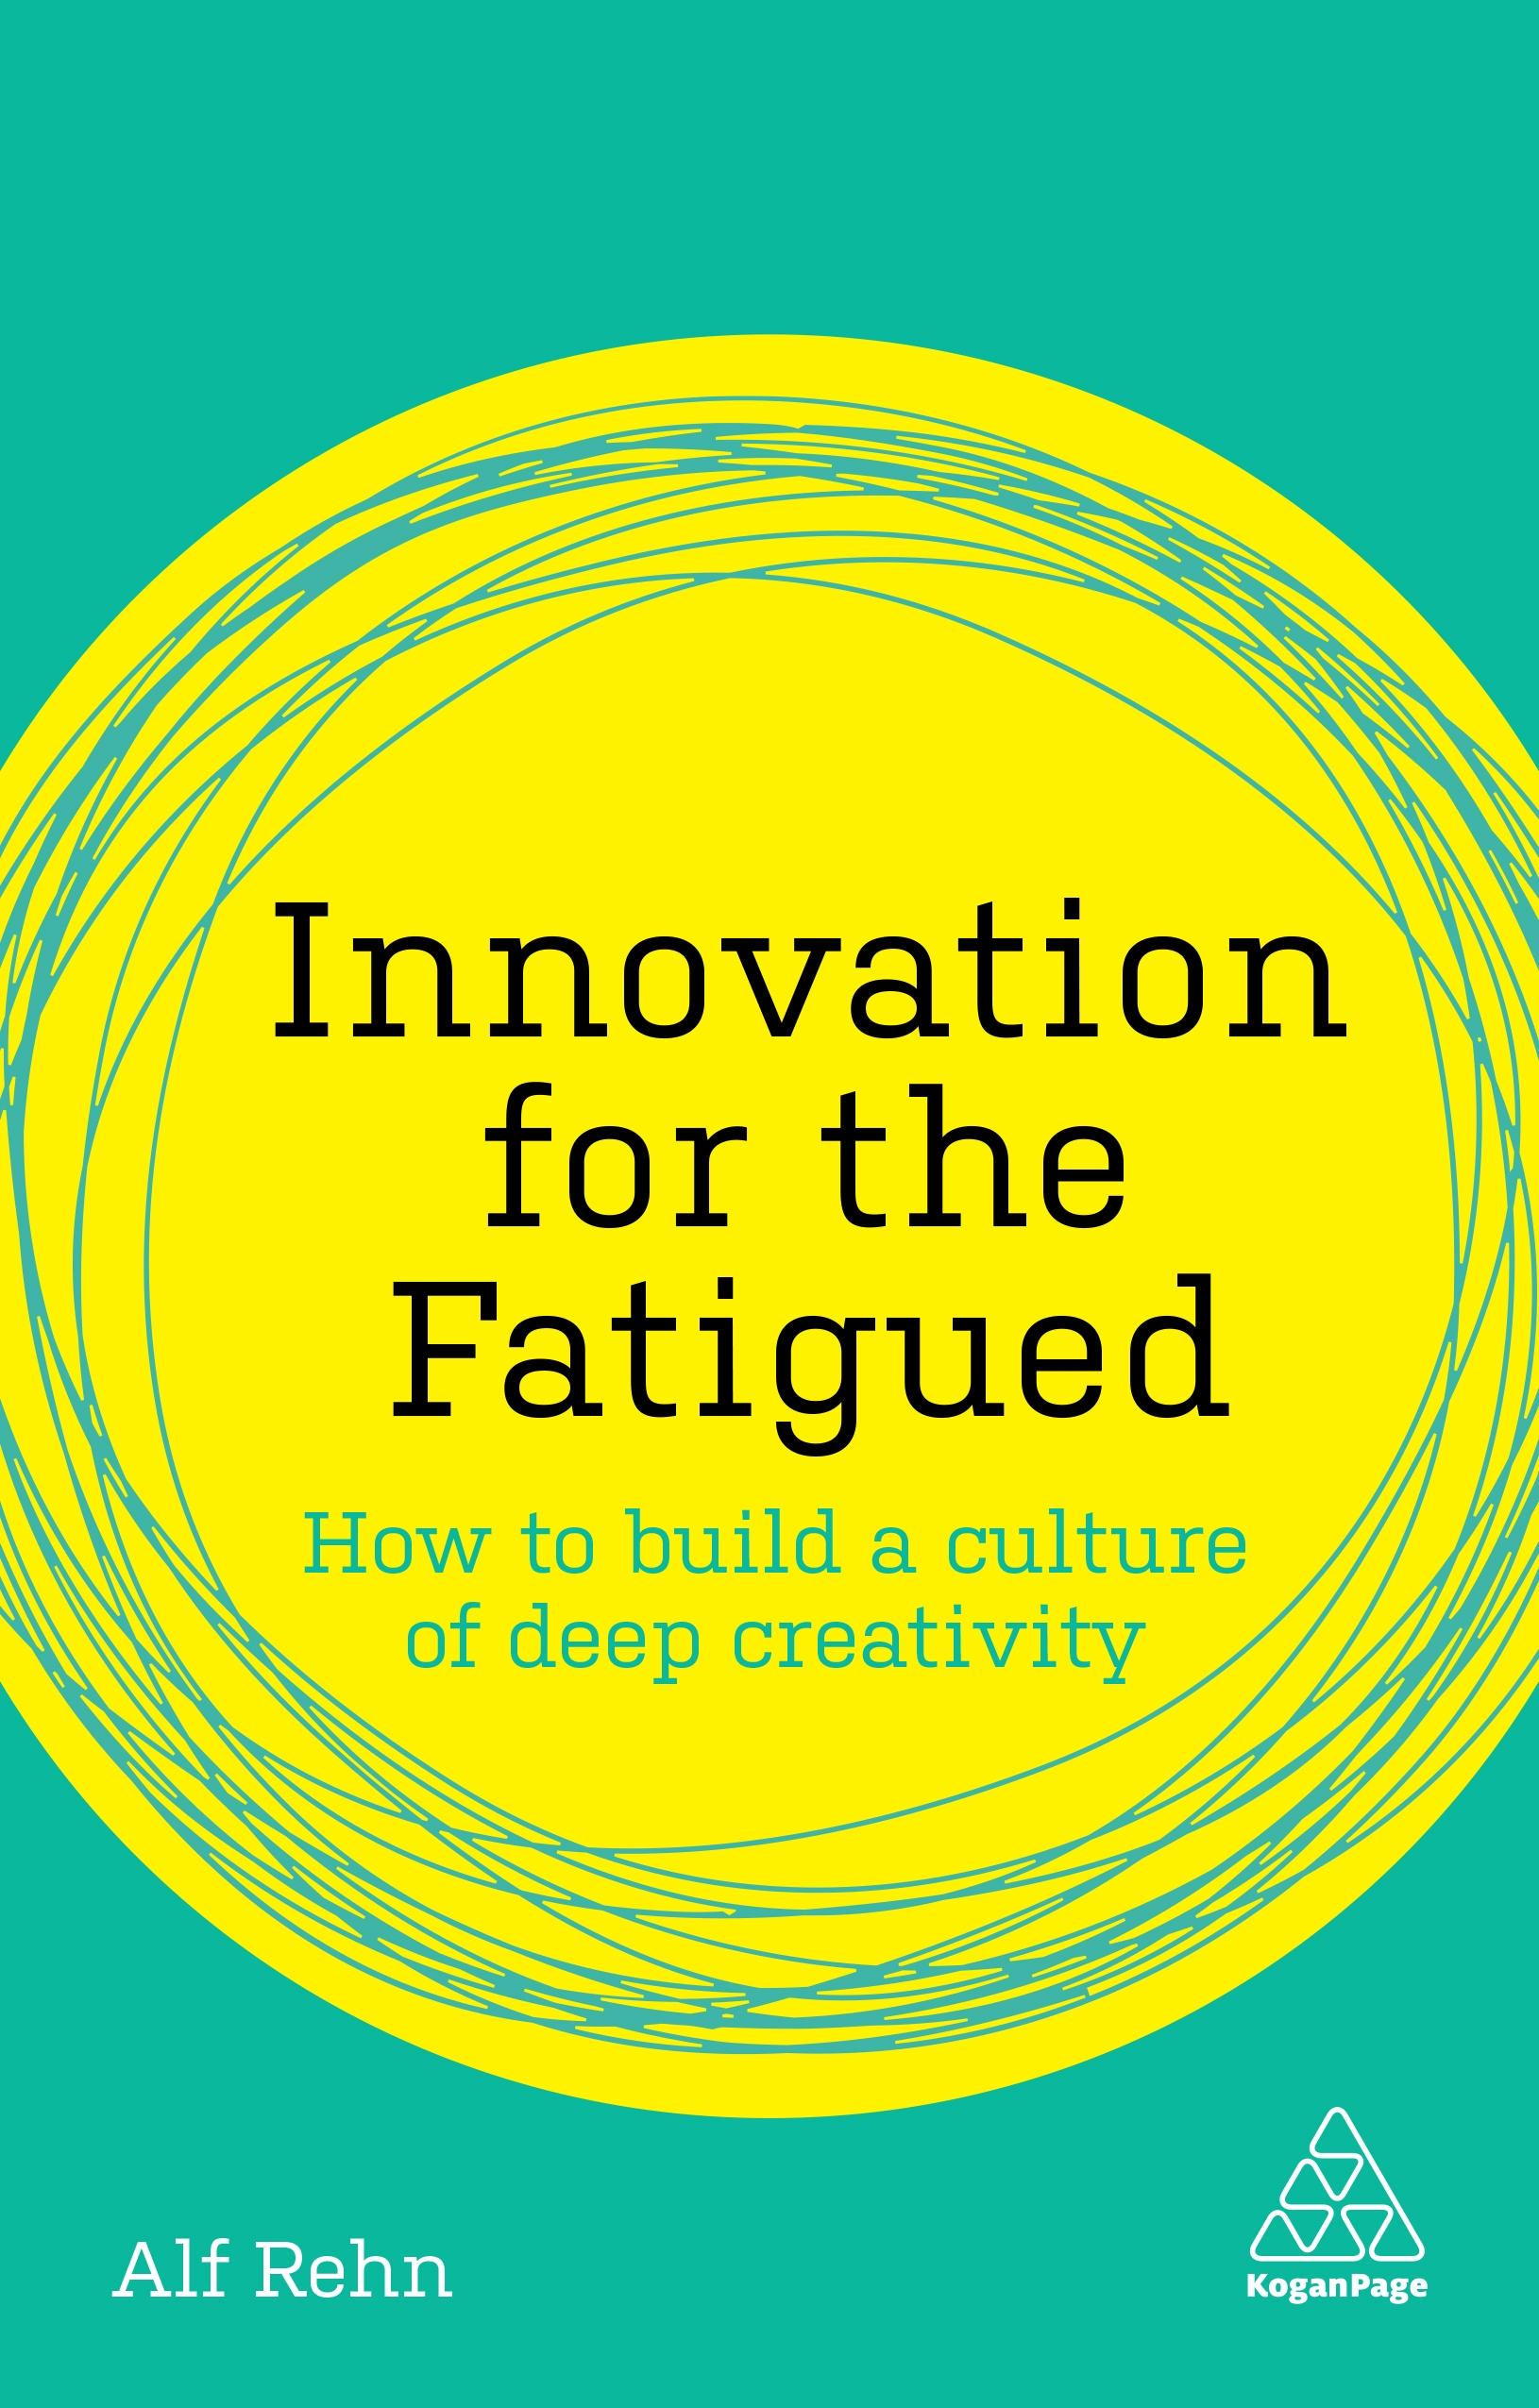 Innovation for the Fatigued